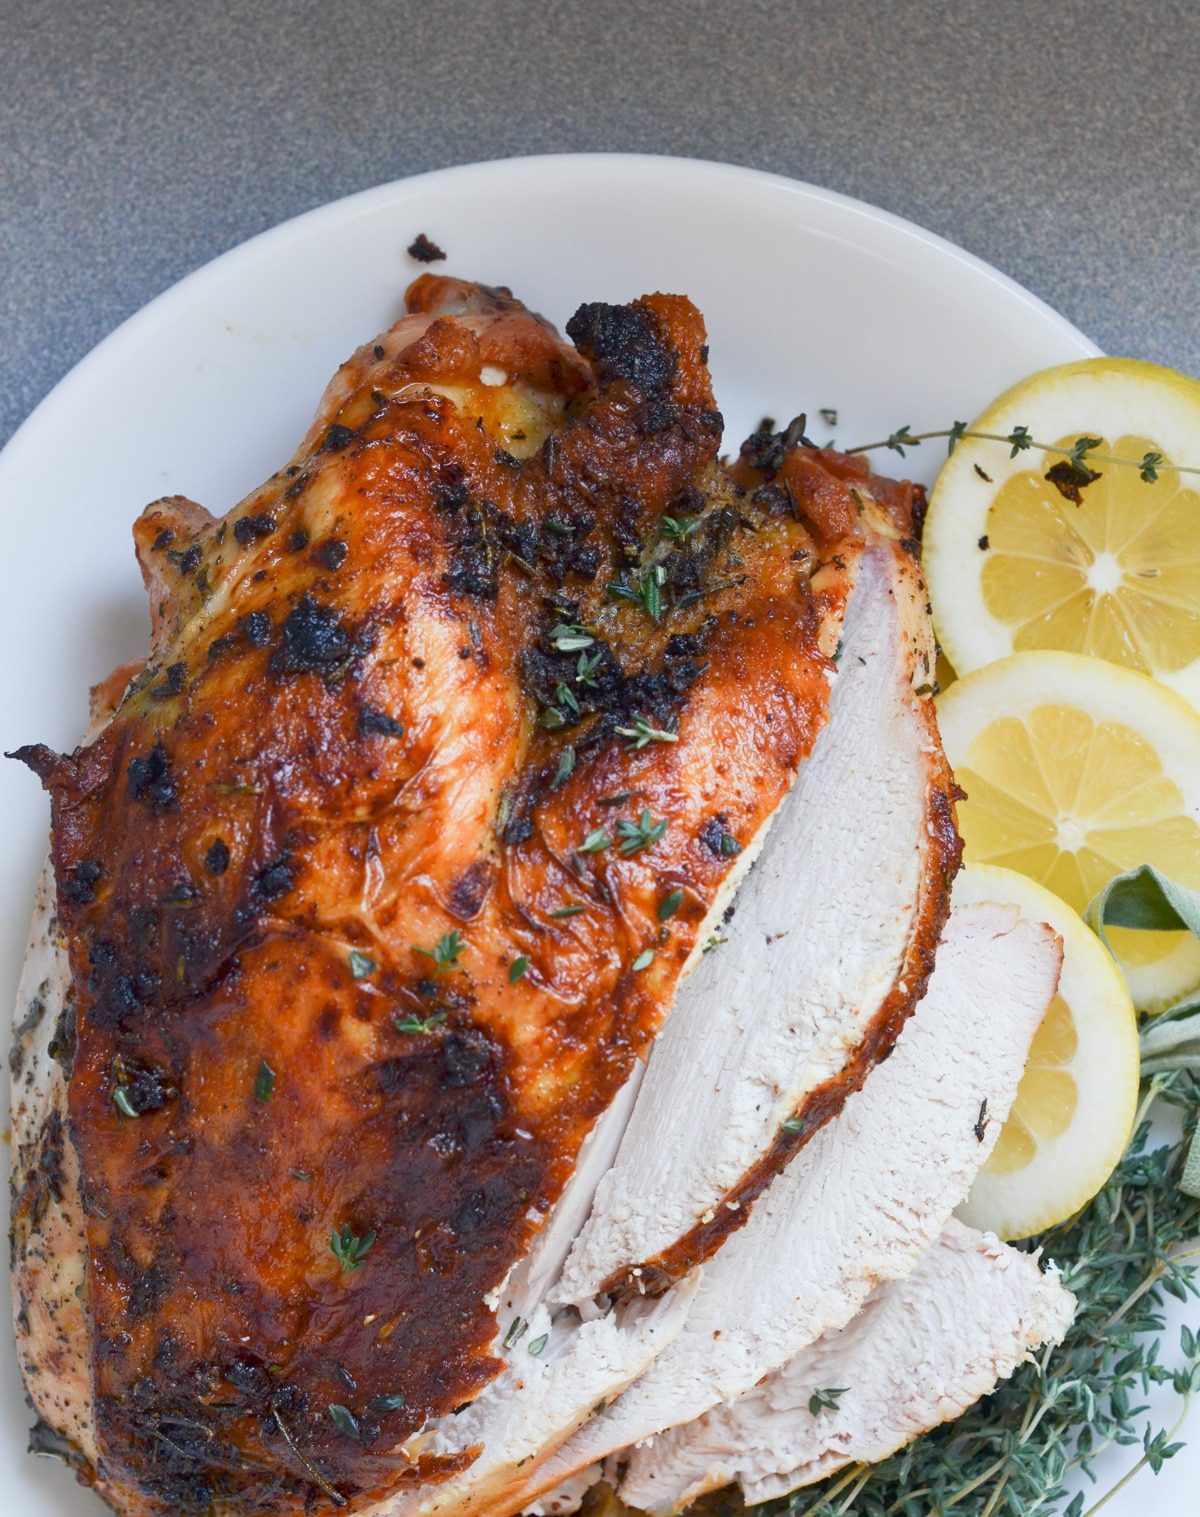 Roasted turkey breast on platter with lemons, thyme bunches.